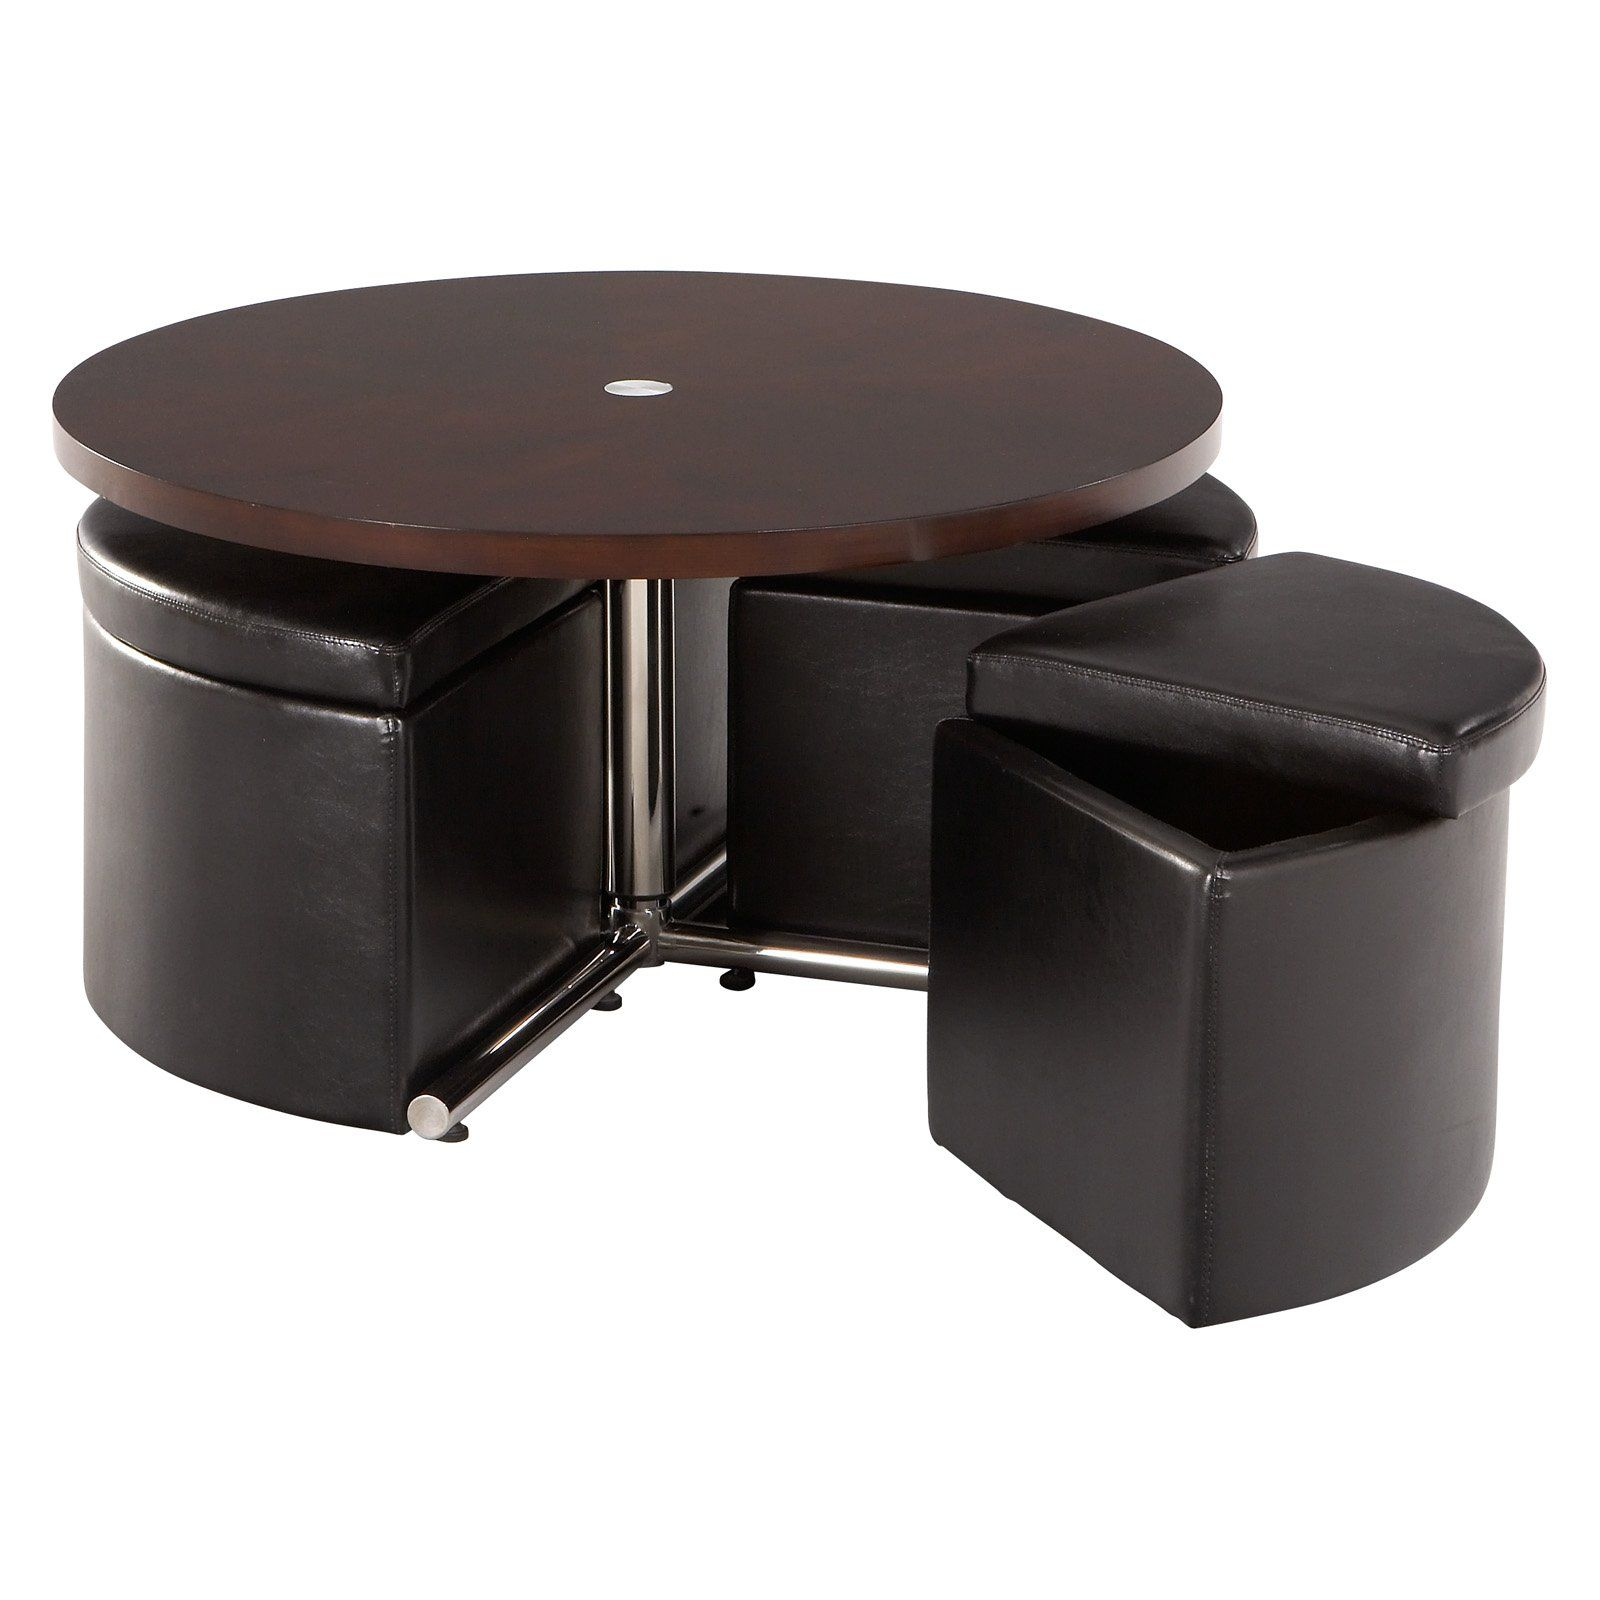 Have To Have It Standard Furniture Cosmo Adjustable Height Round Wood Top Coffee Table With 4 St Cube Coffee Table Coffee Table With Seating Teak Coffee Table